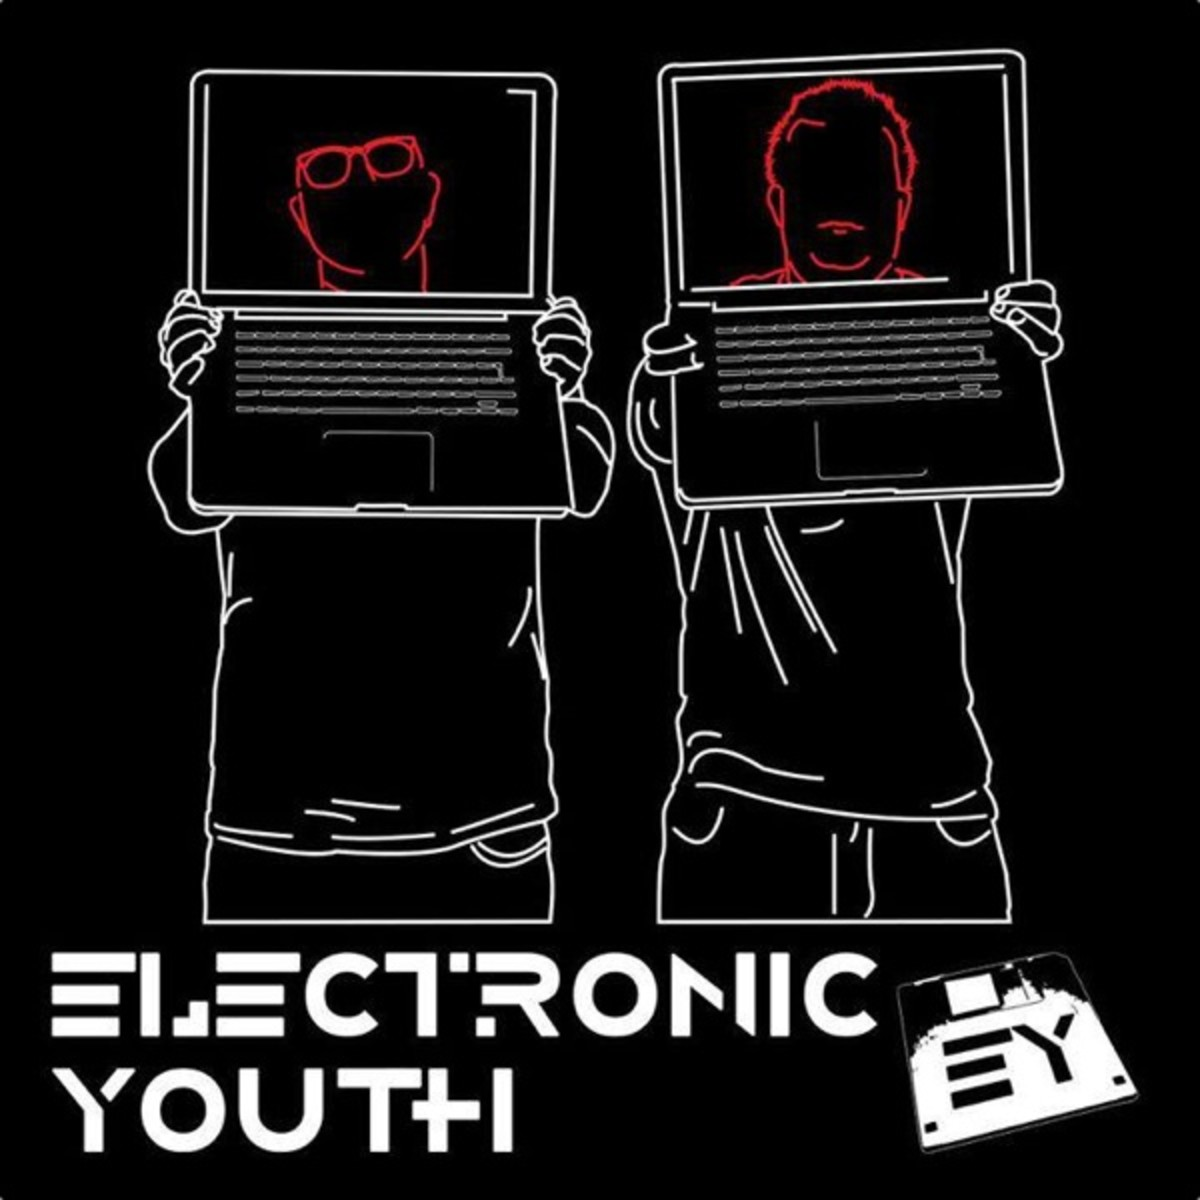 Electronic Youth